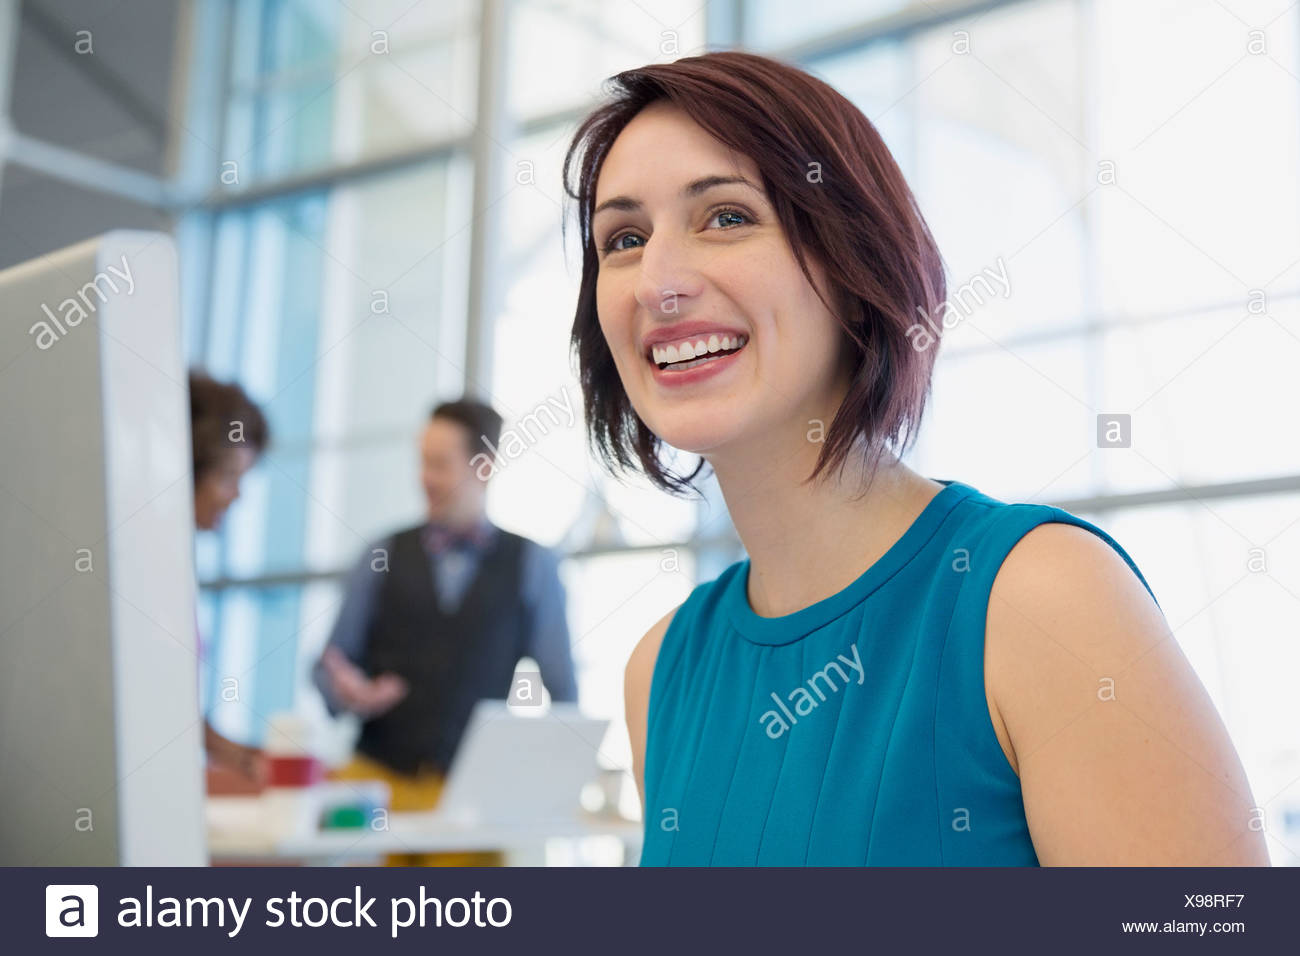 Smiling businesswoman in office Photo Stock